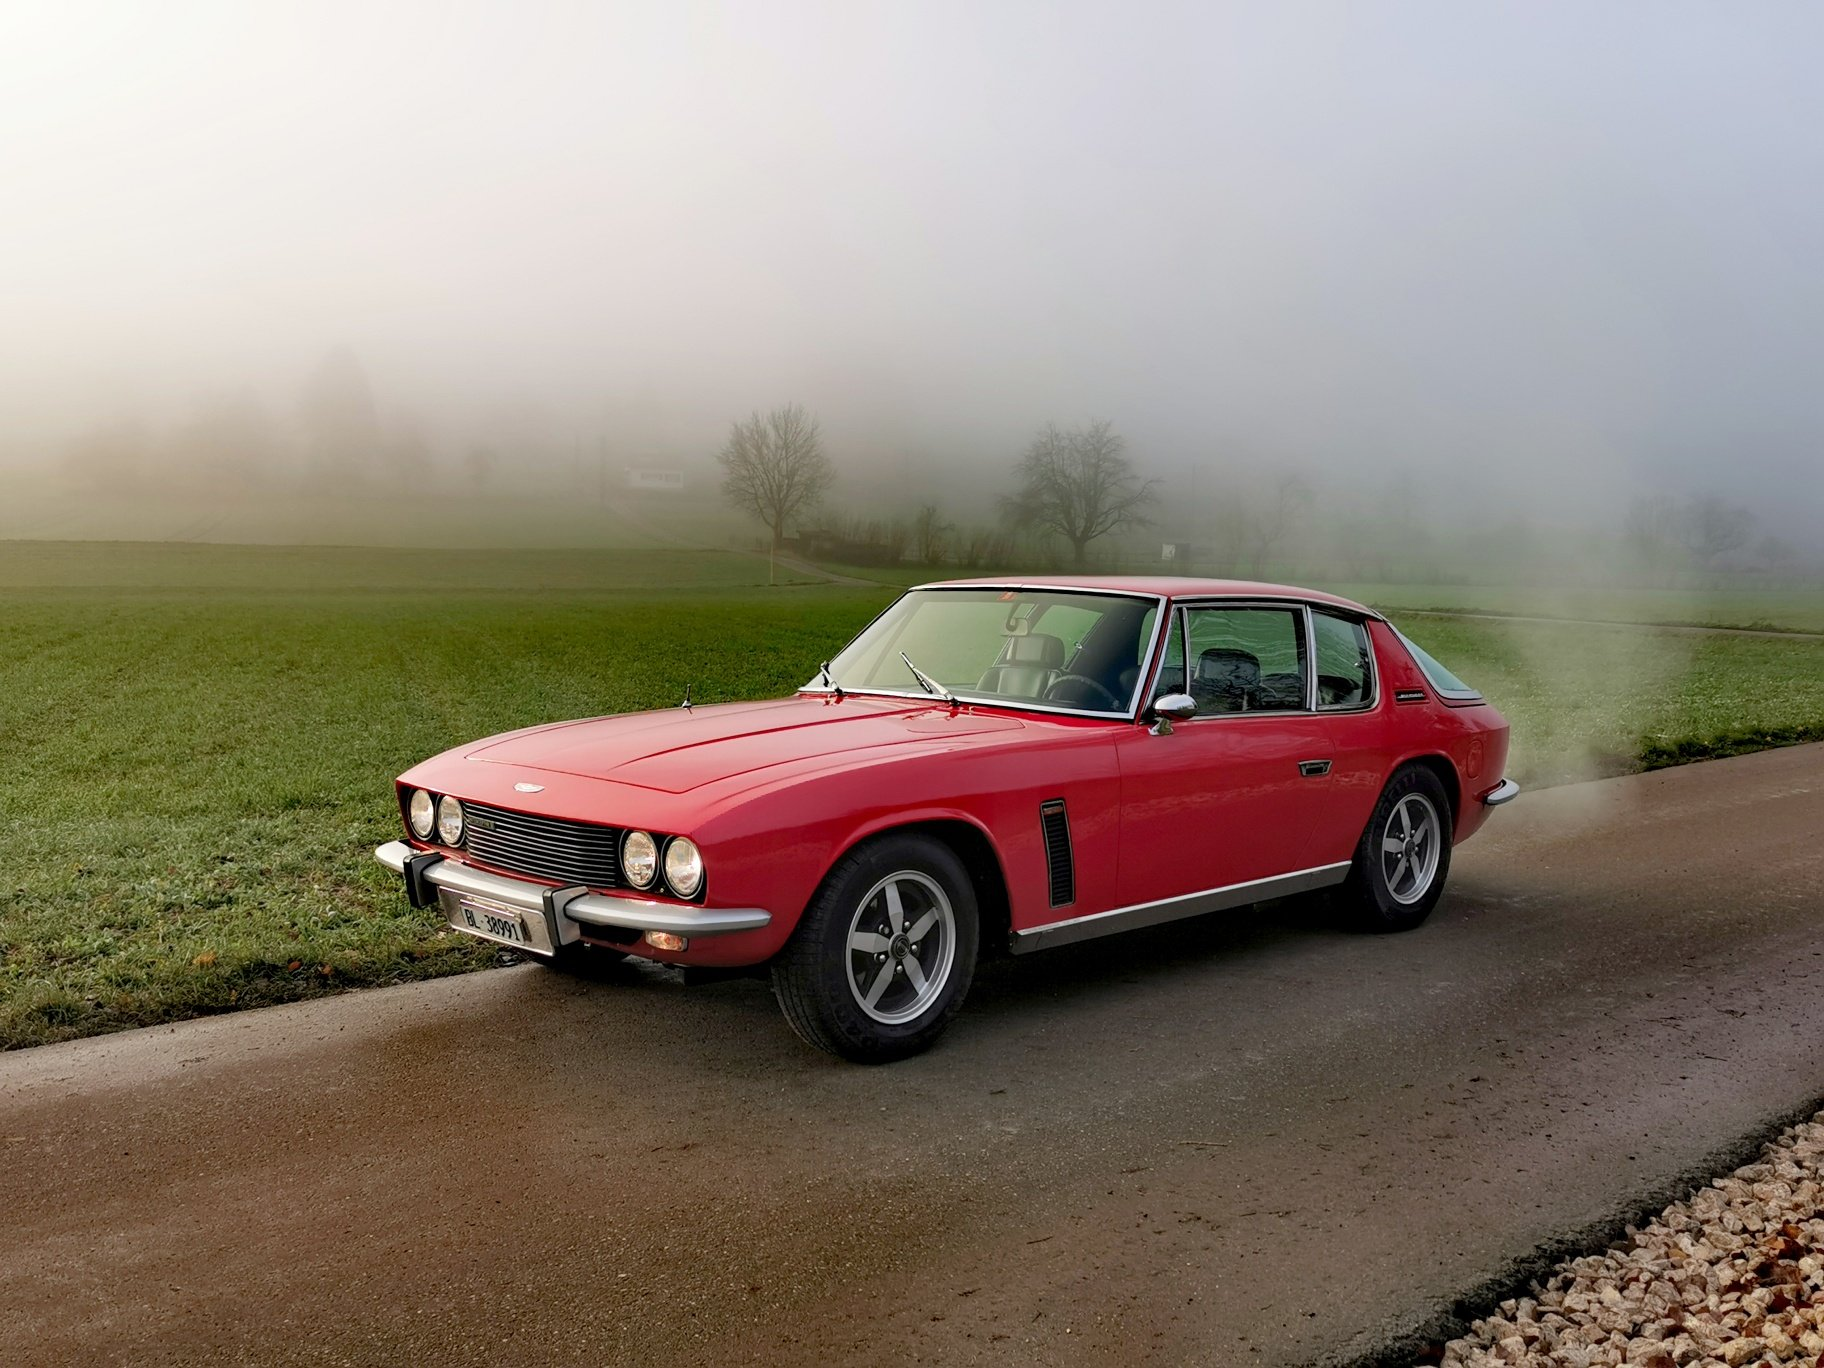 Picture of 1974 Interceptor in great Condition